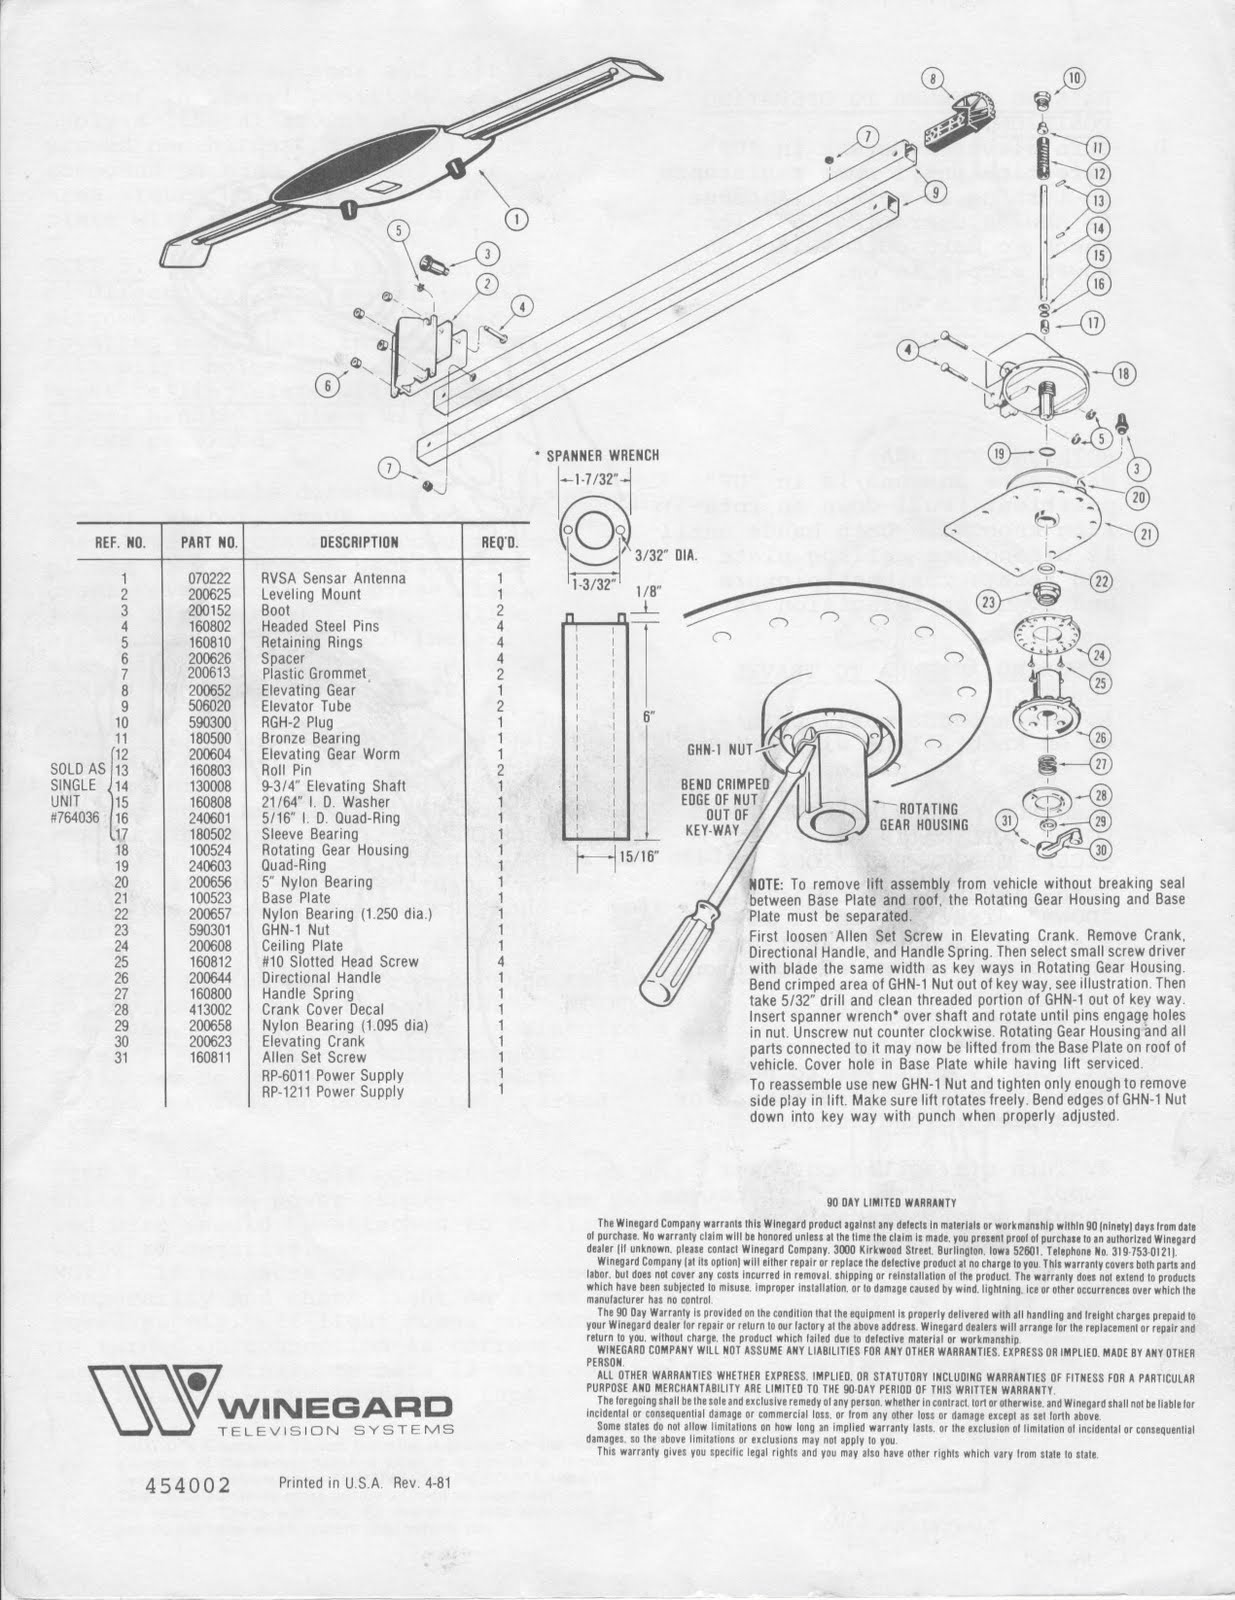 1983 fleetwood pace arrow owners manuals winegard rv tv antenna winegard carryout wiring diagram 1983 fleetwood